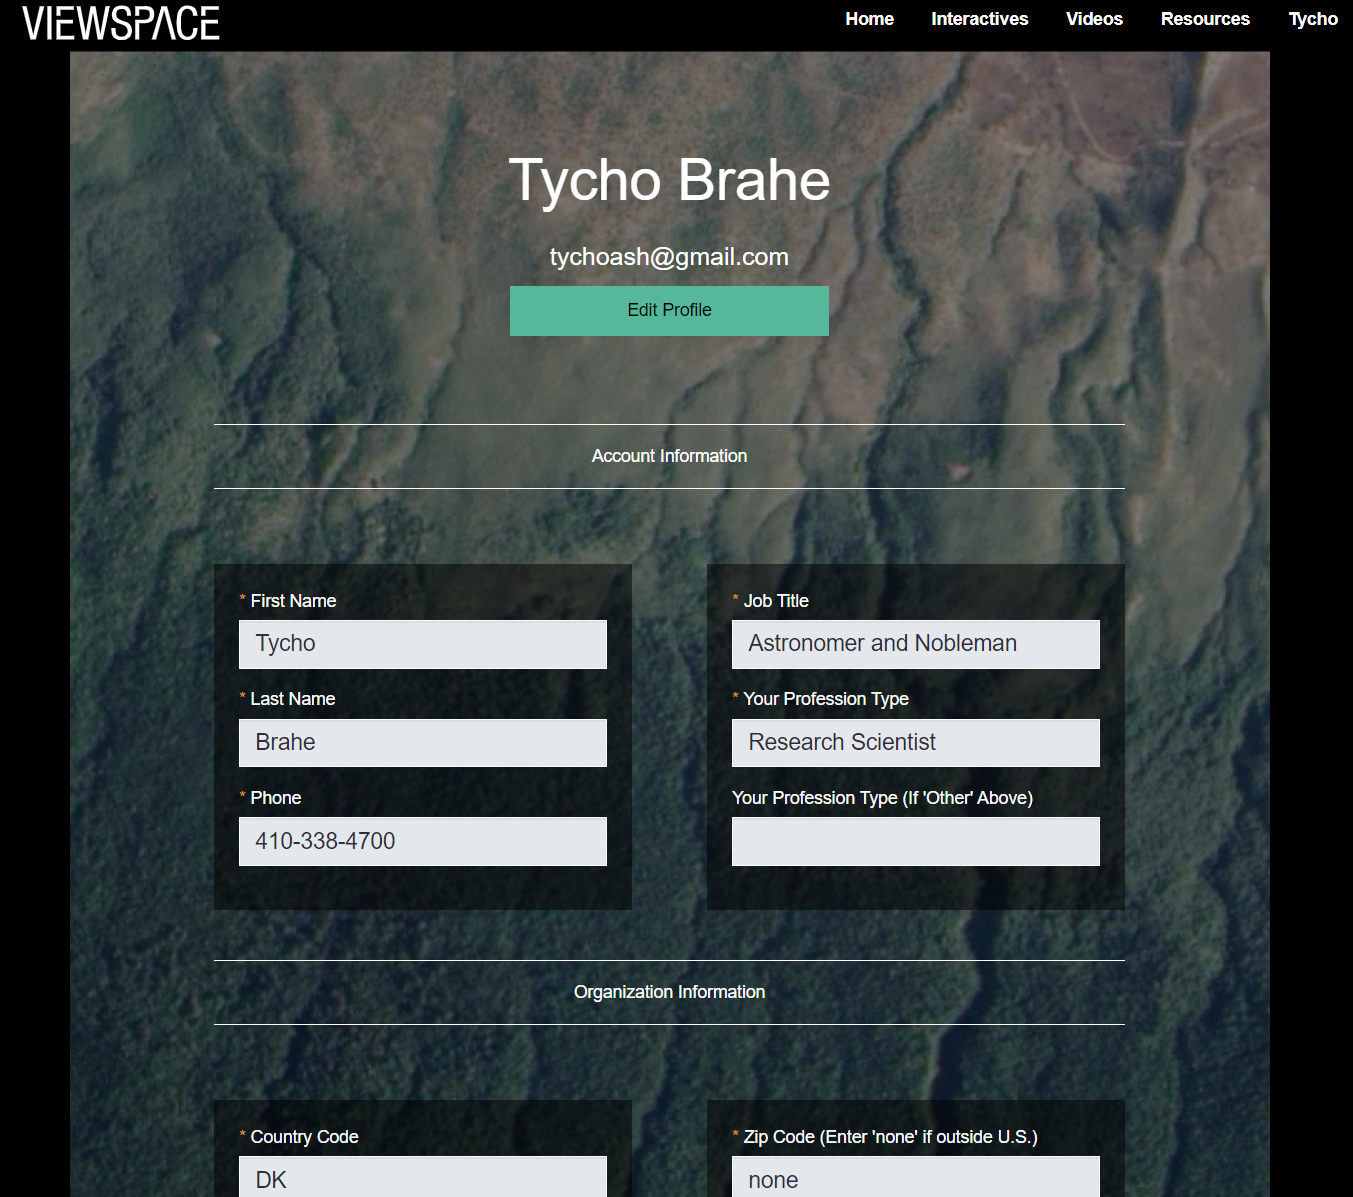 Screenshot of the top portion of the ViewSpace Profile Page.